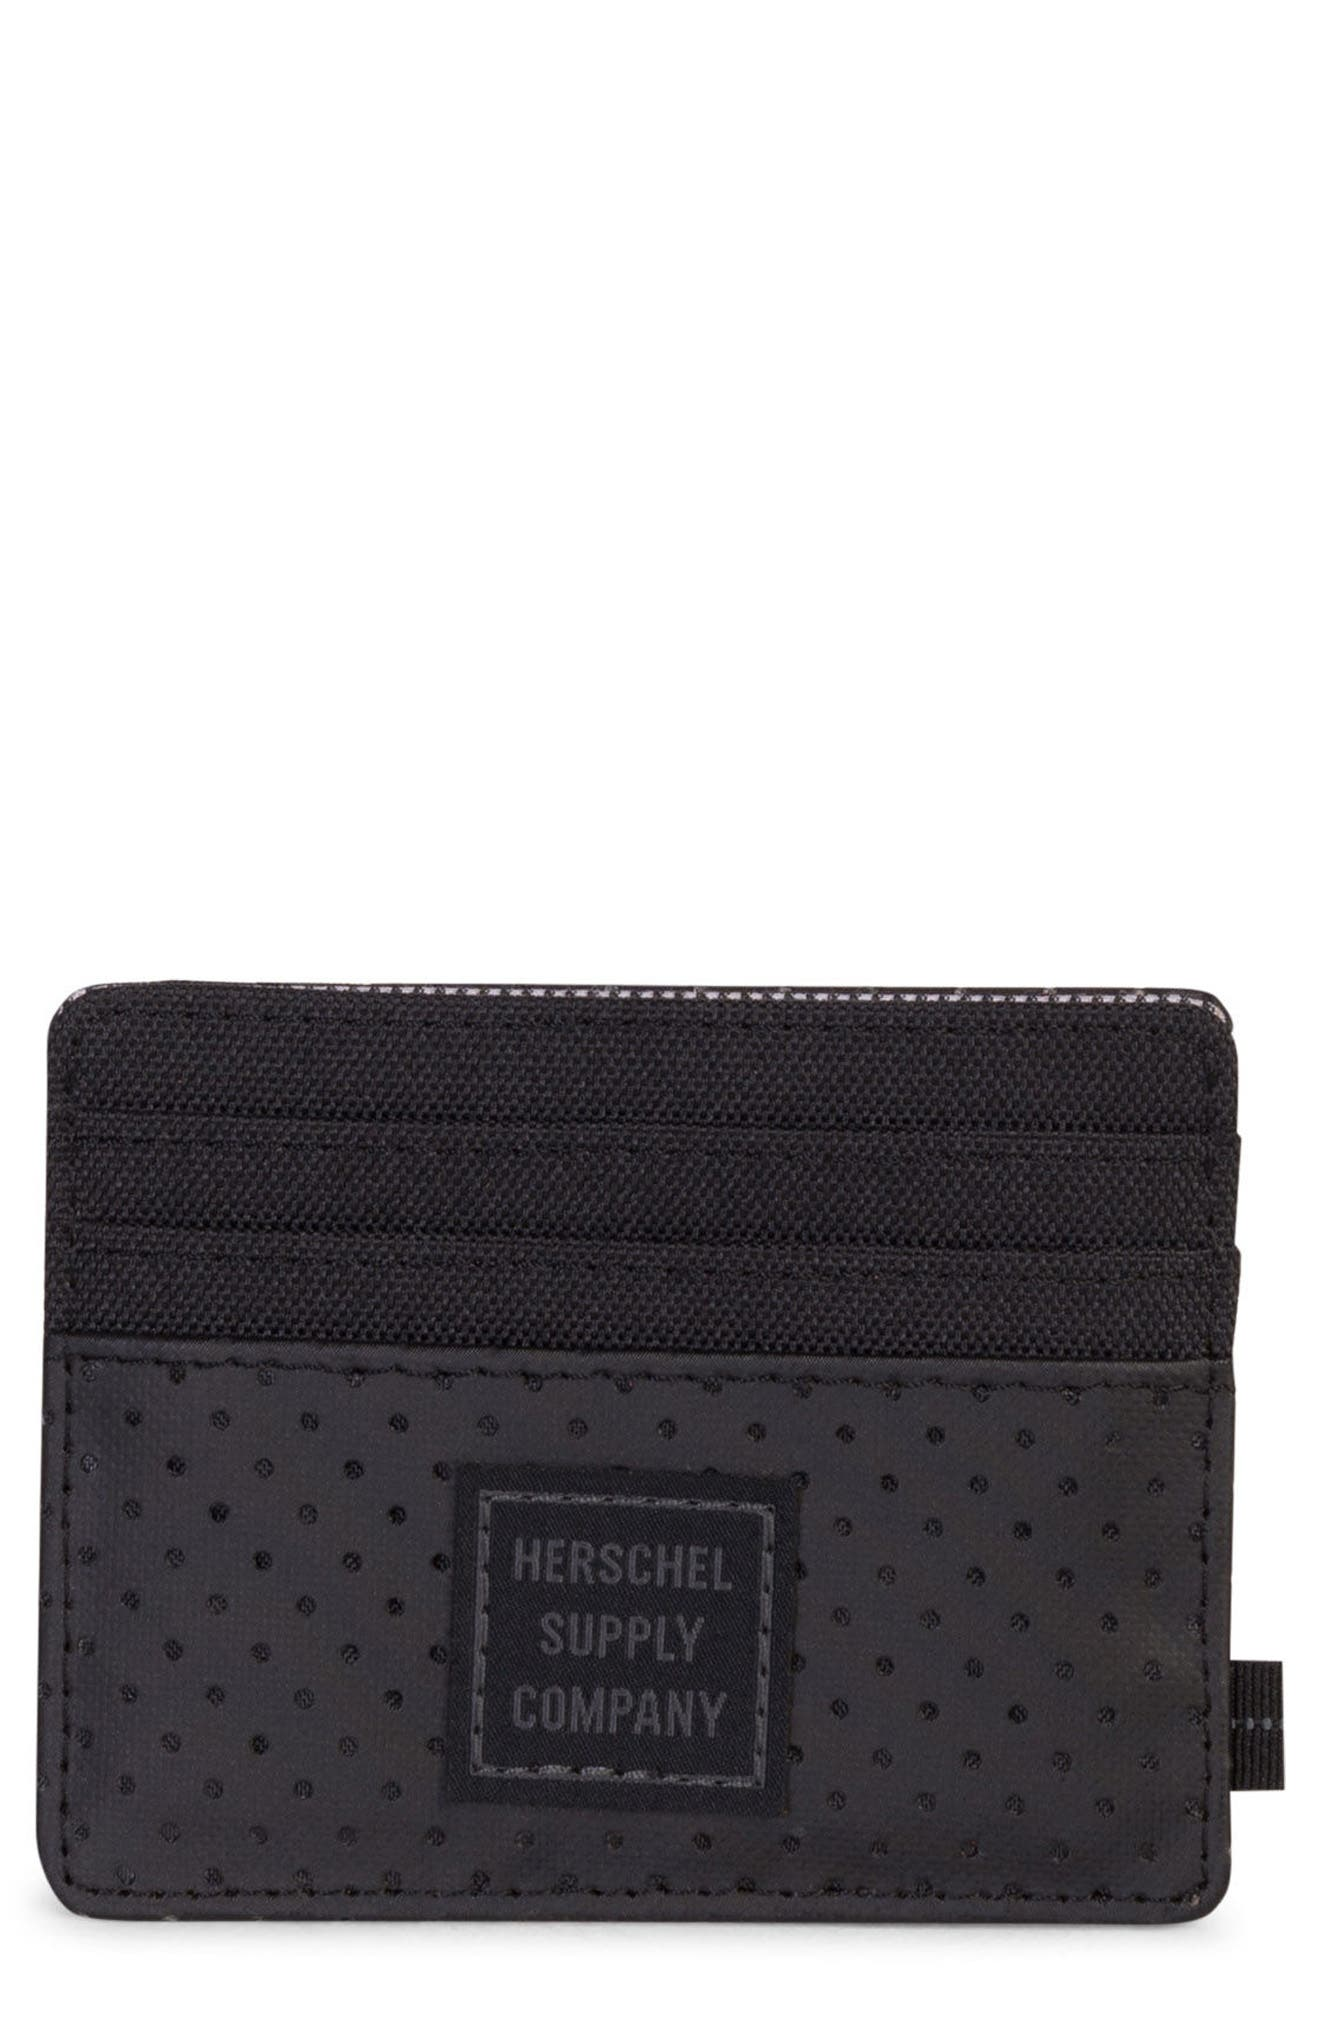 Herschel Supply Co. Felix Aspect Perforated Card Case